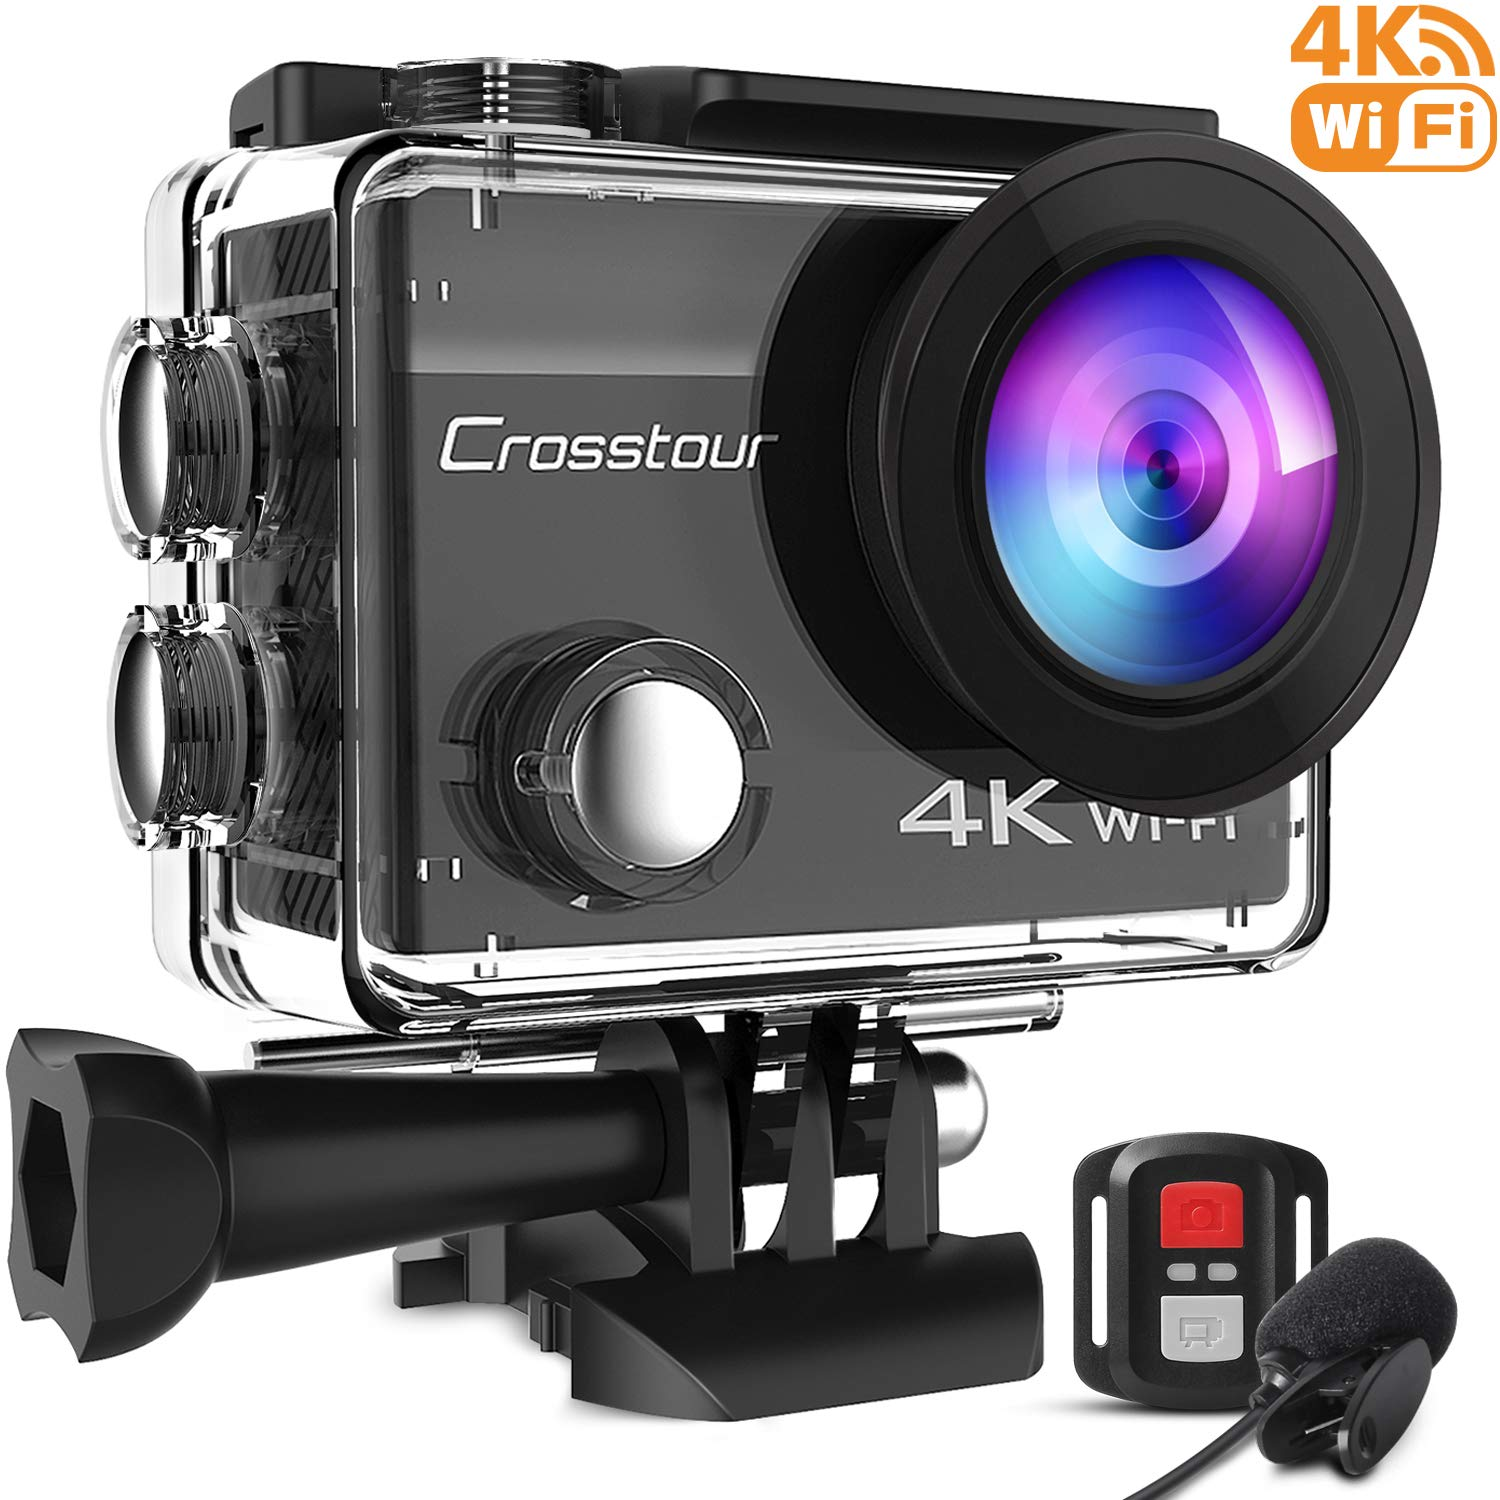 Crosstour 4K Action Camera 16MP WiFi Underwater Camera External Microphone Remote Control Anti-Shaking Time-Lapse with 2 Rechargeable Batteries and Accessories Sets for Diving and Snorkeling by Crosstour